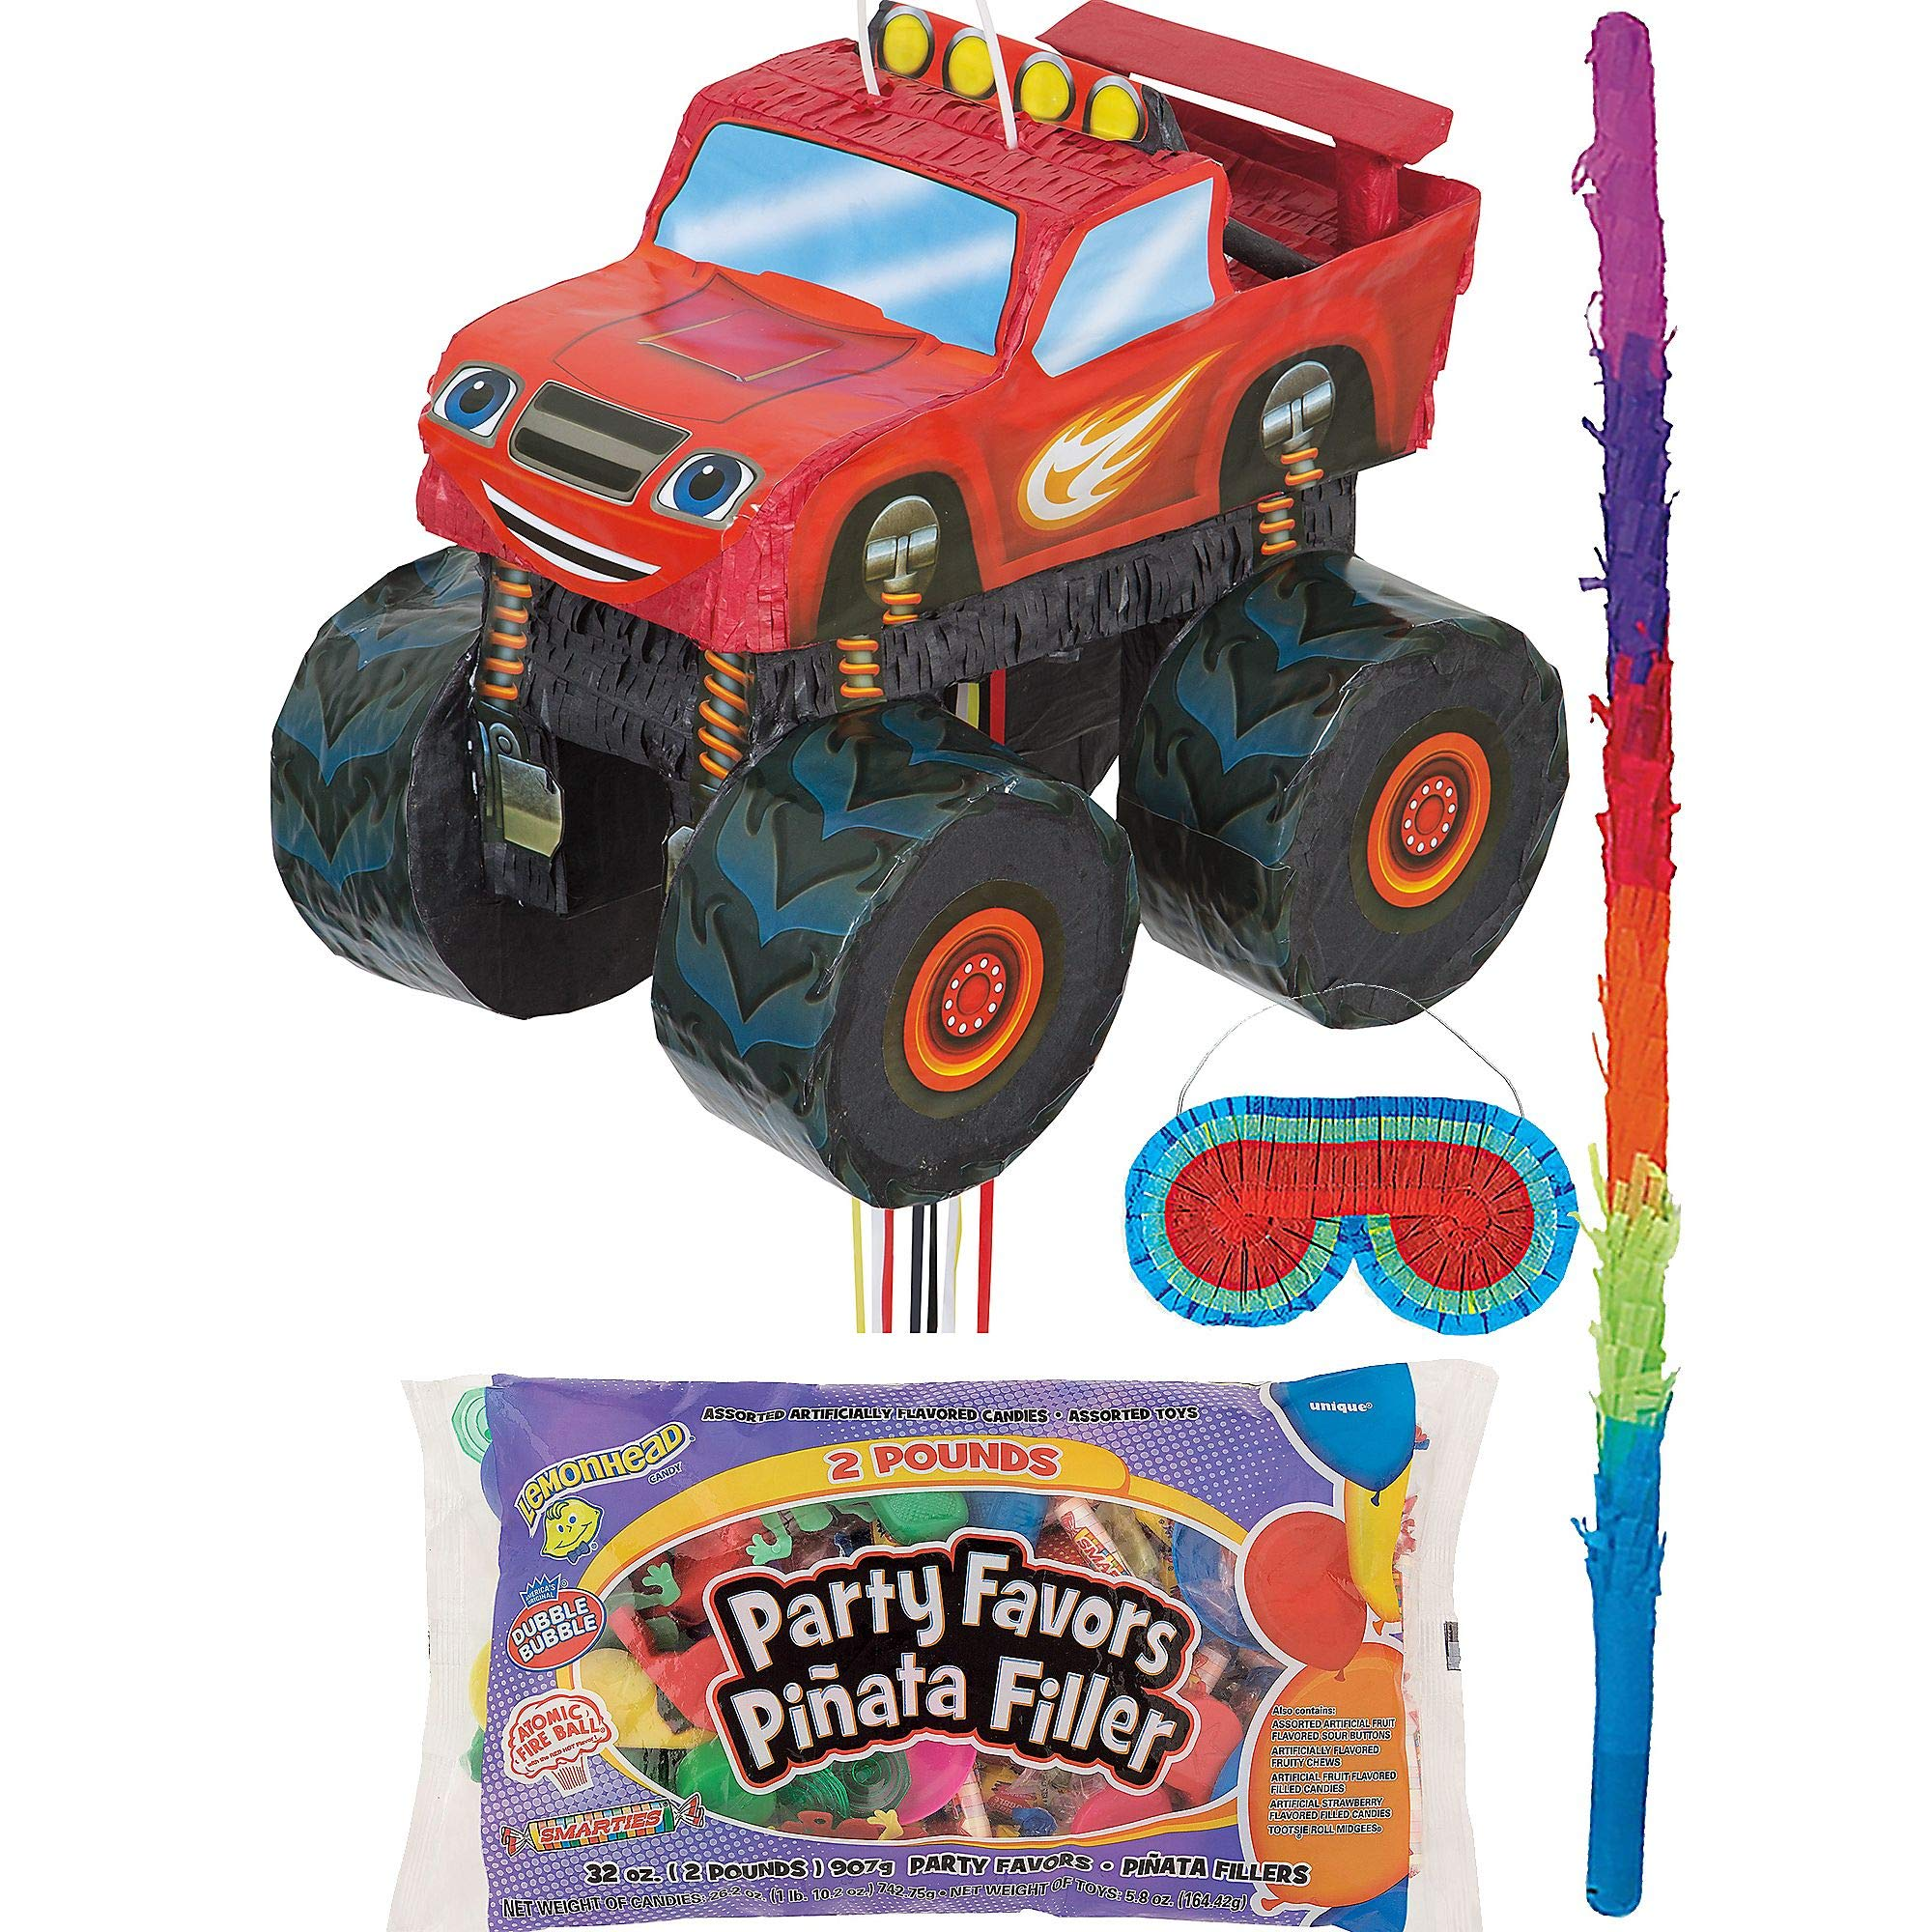 Party City Blaze and the Monster Machines Truck Pinata Kit for Birthday Party, Includes Bat, Blindfold, Candy and Favors